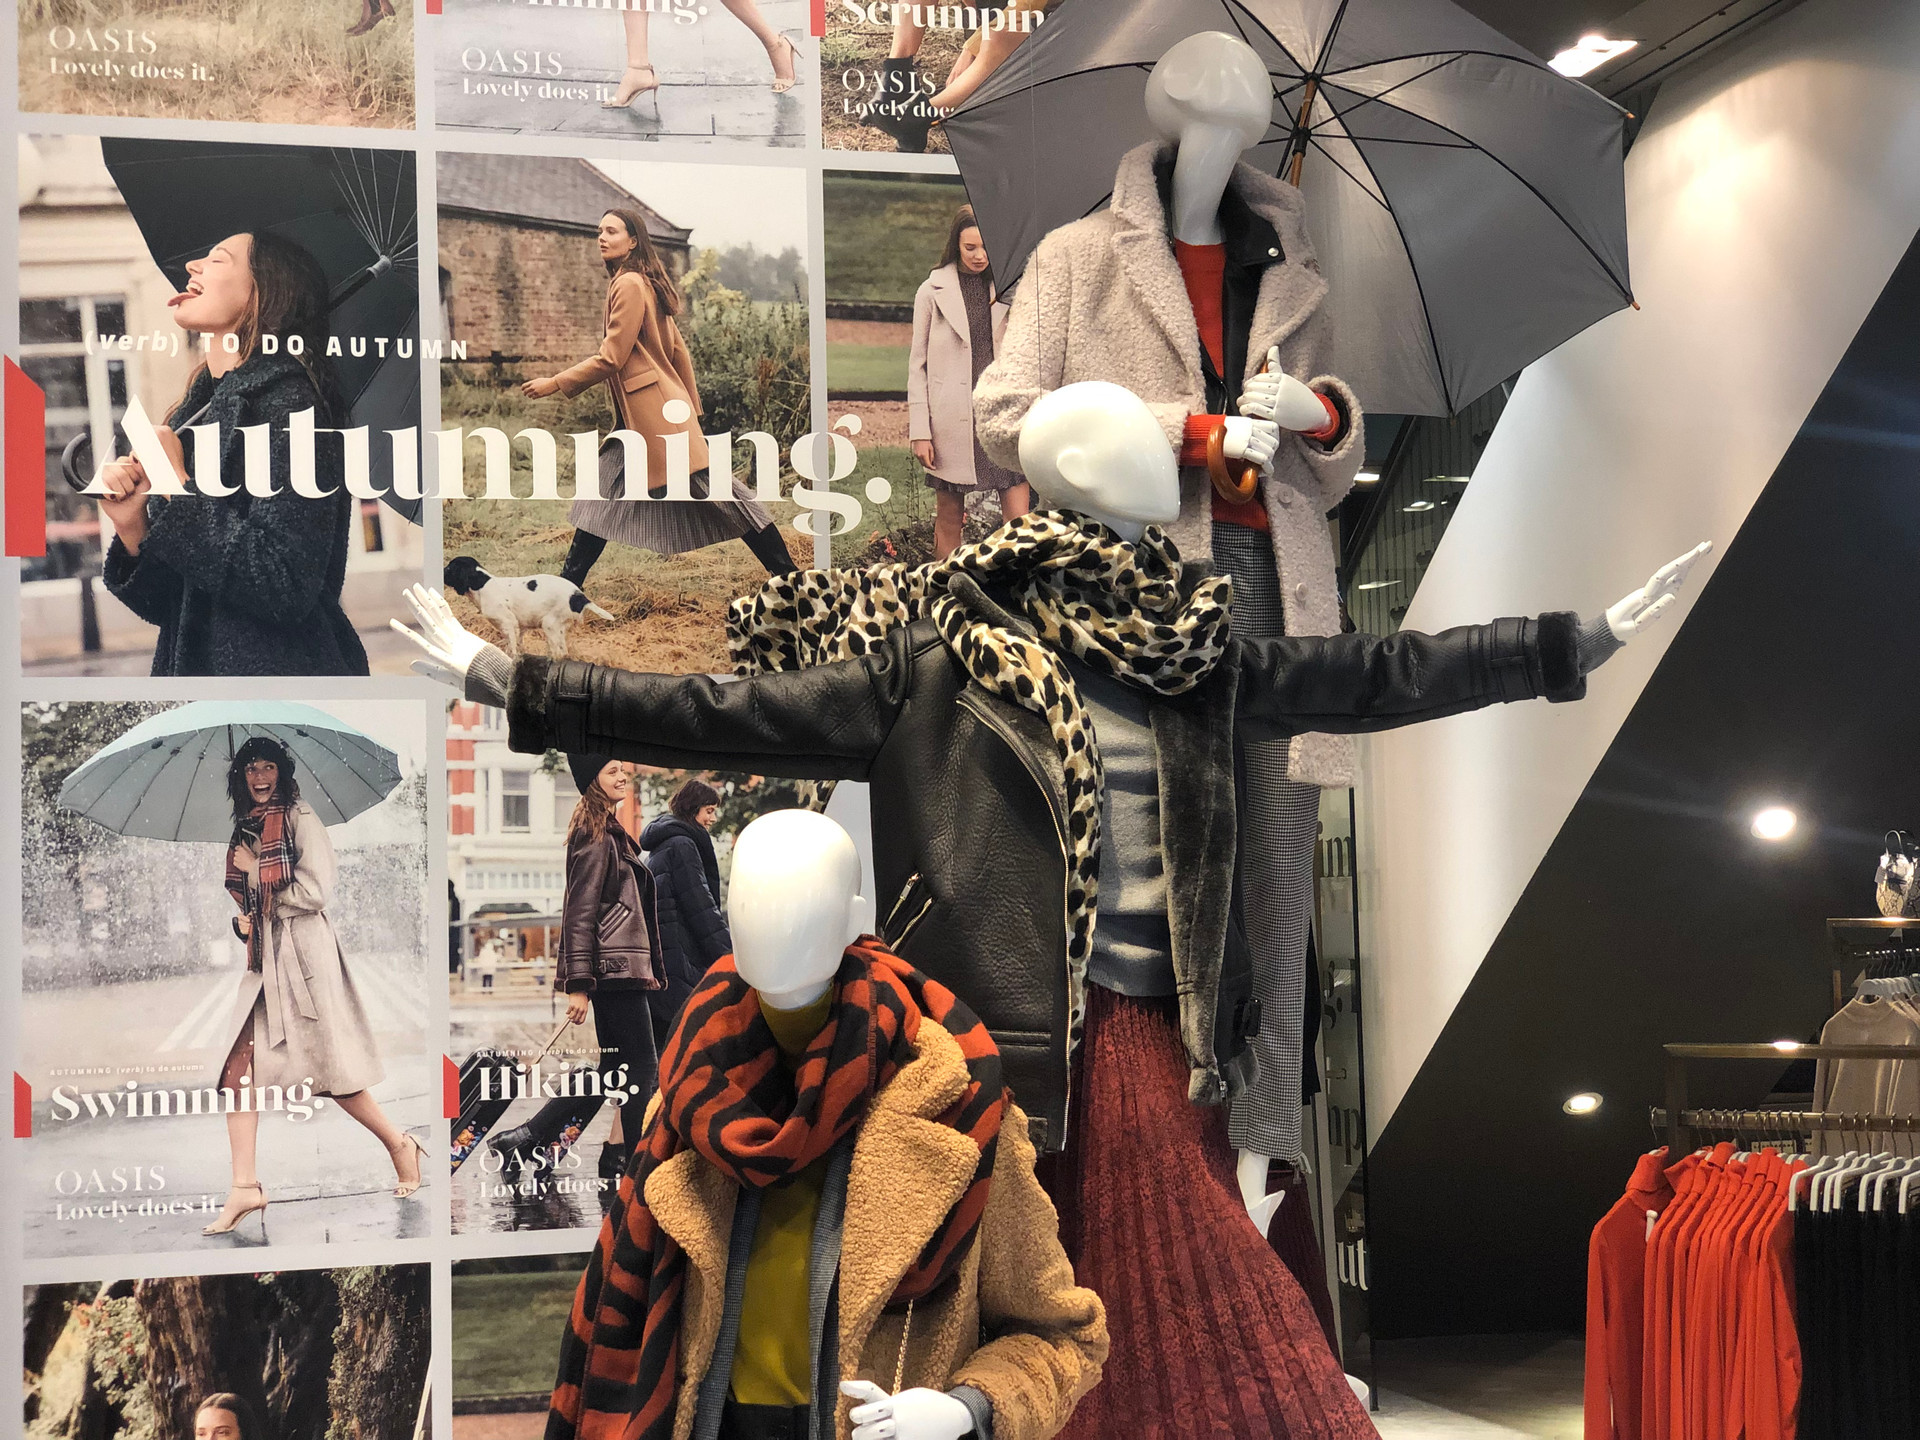 The ing's of Autumn - A/W Campaign 2019